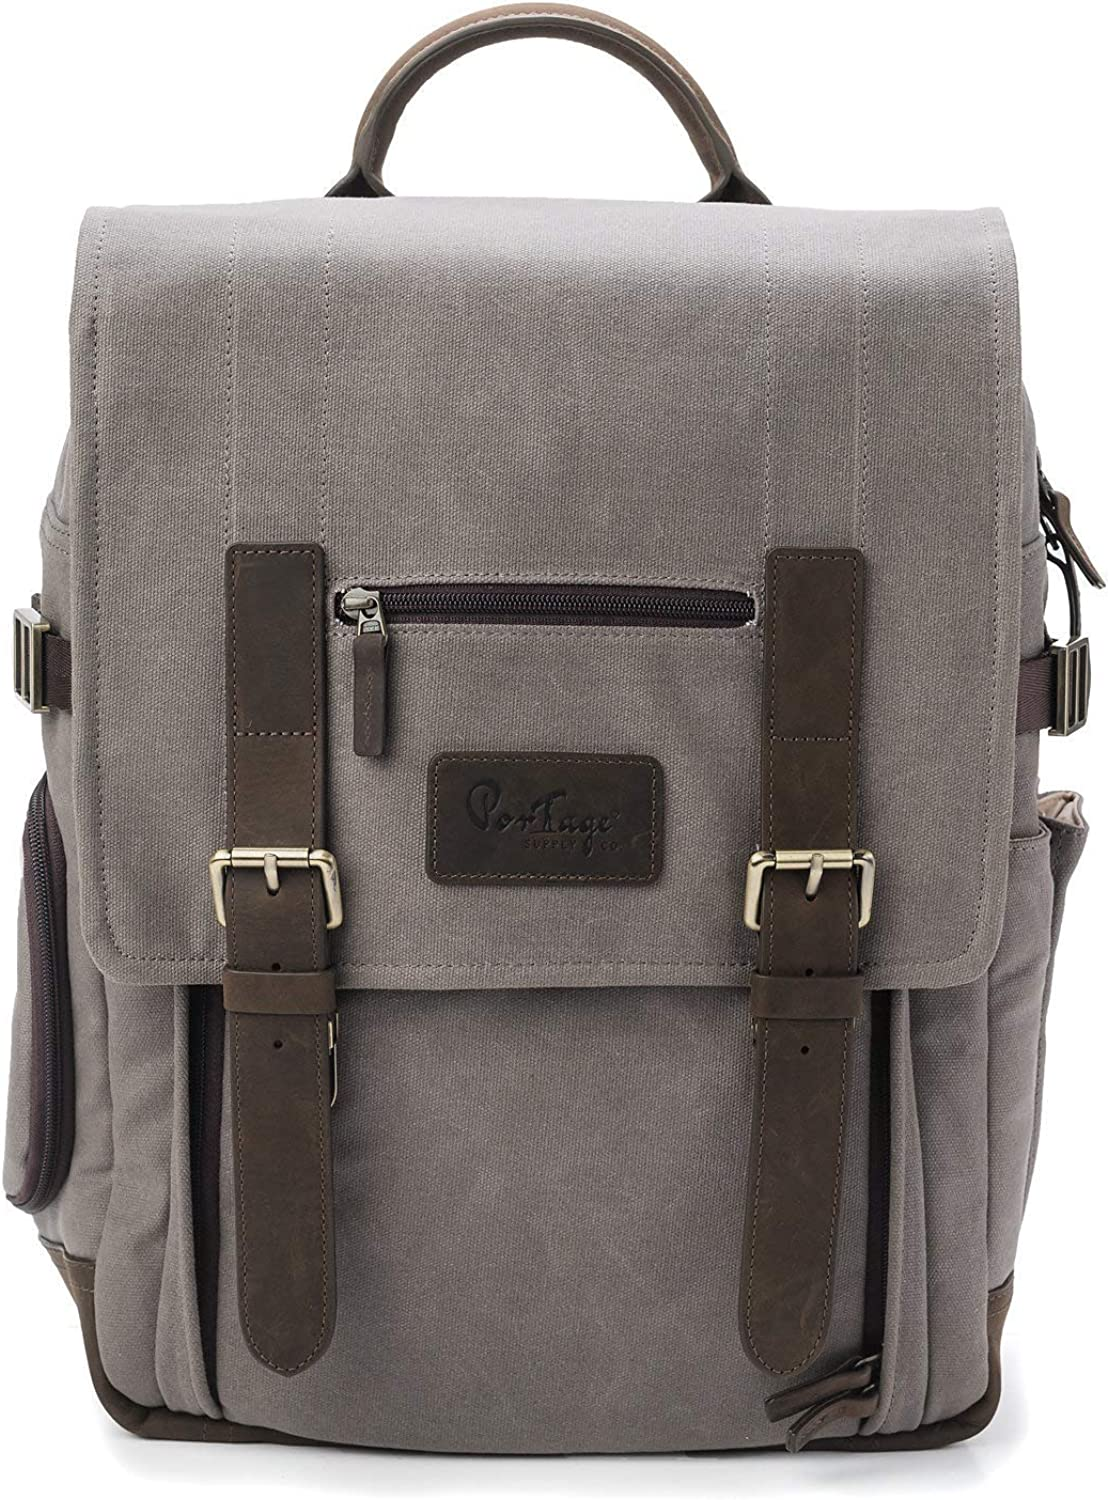 The Kenora Backpack by Portage CLEARANCE PRICE! GEN4 W/SIDE ACCESS! - Camera, Travel, Gear, Laptop Bag - Genuine Leather and Waxed Canvas